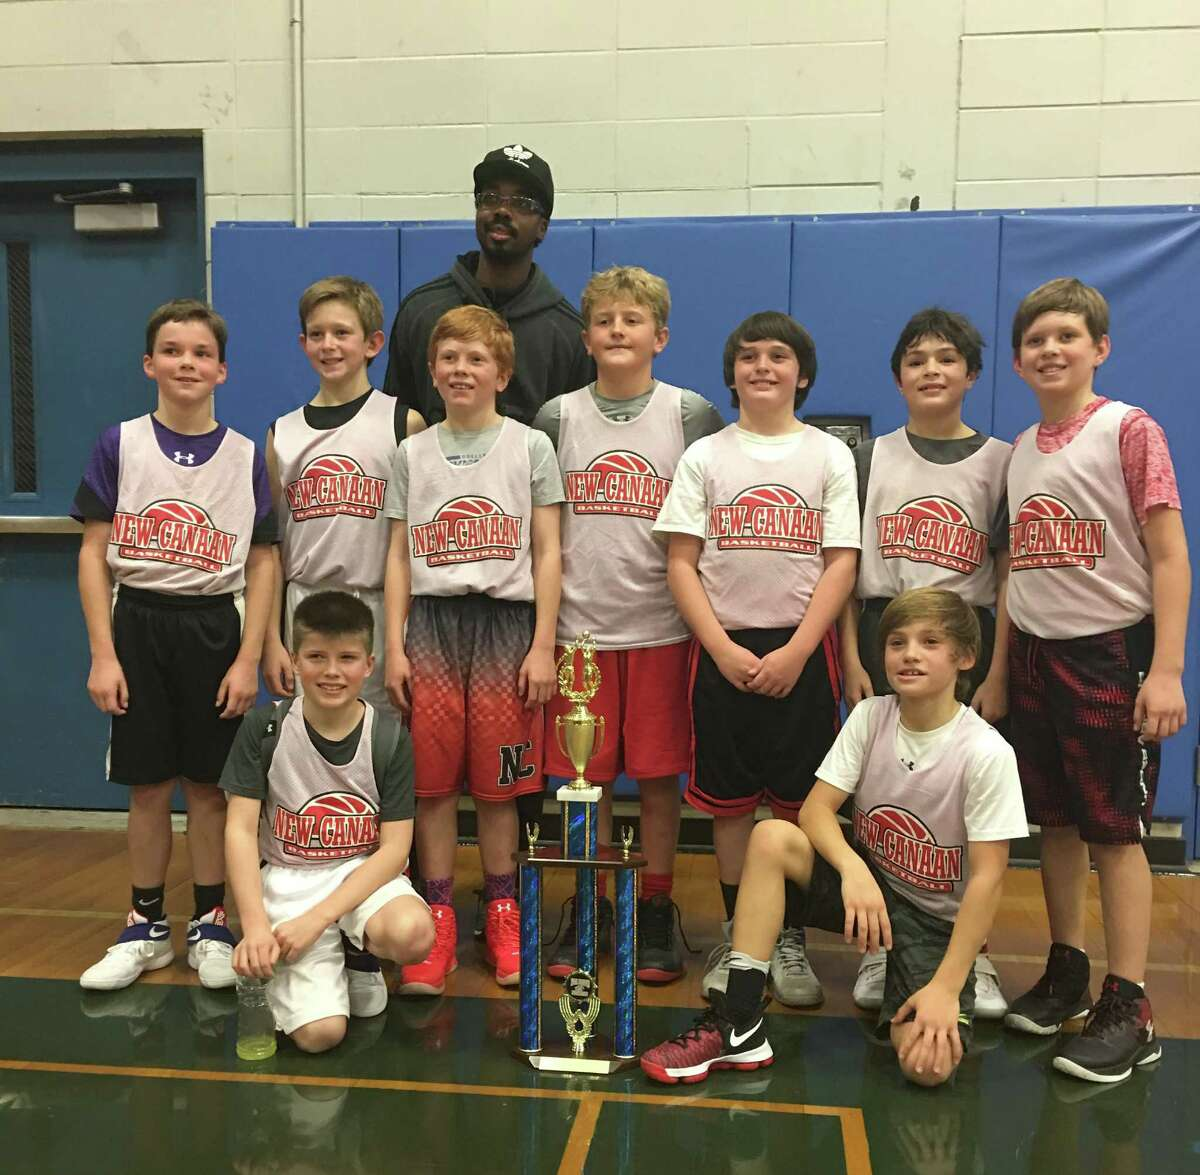 The New Canaan fifth-grade Black team poses with its trophy after winning the Milford Tip-Off Tournament.